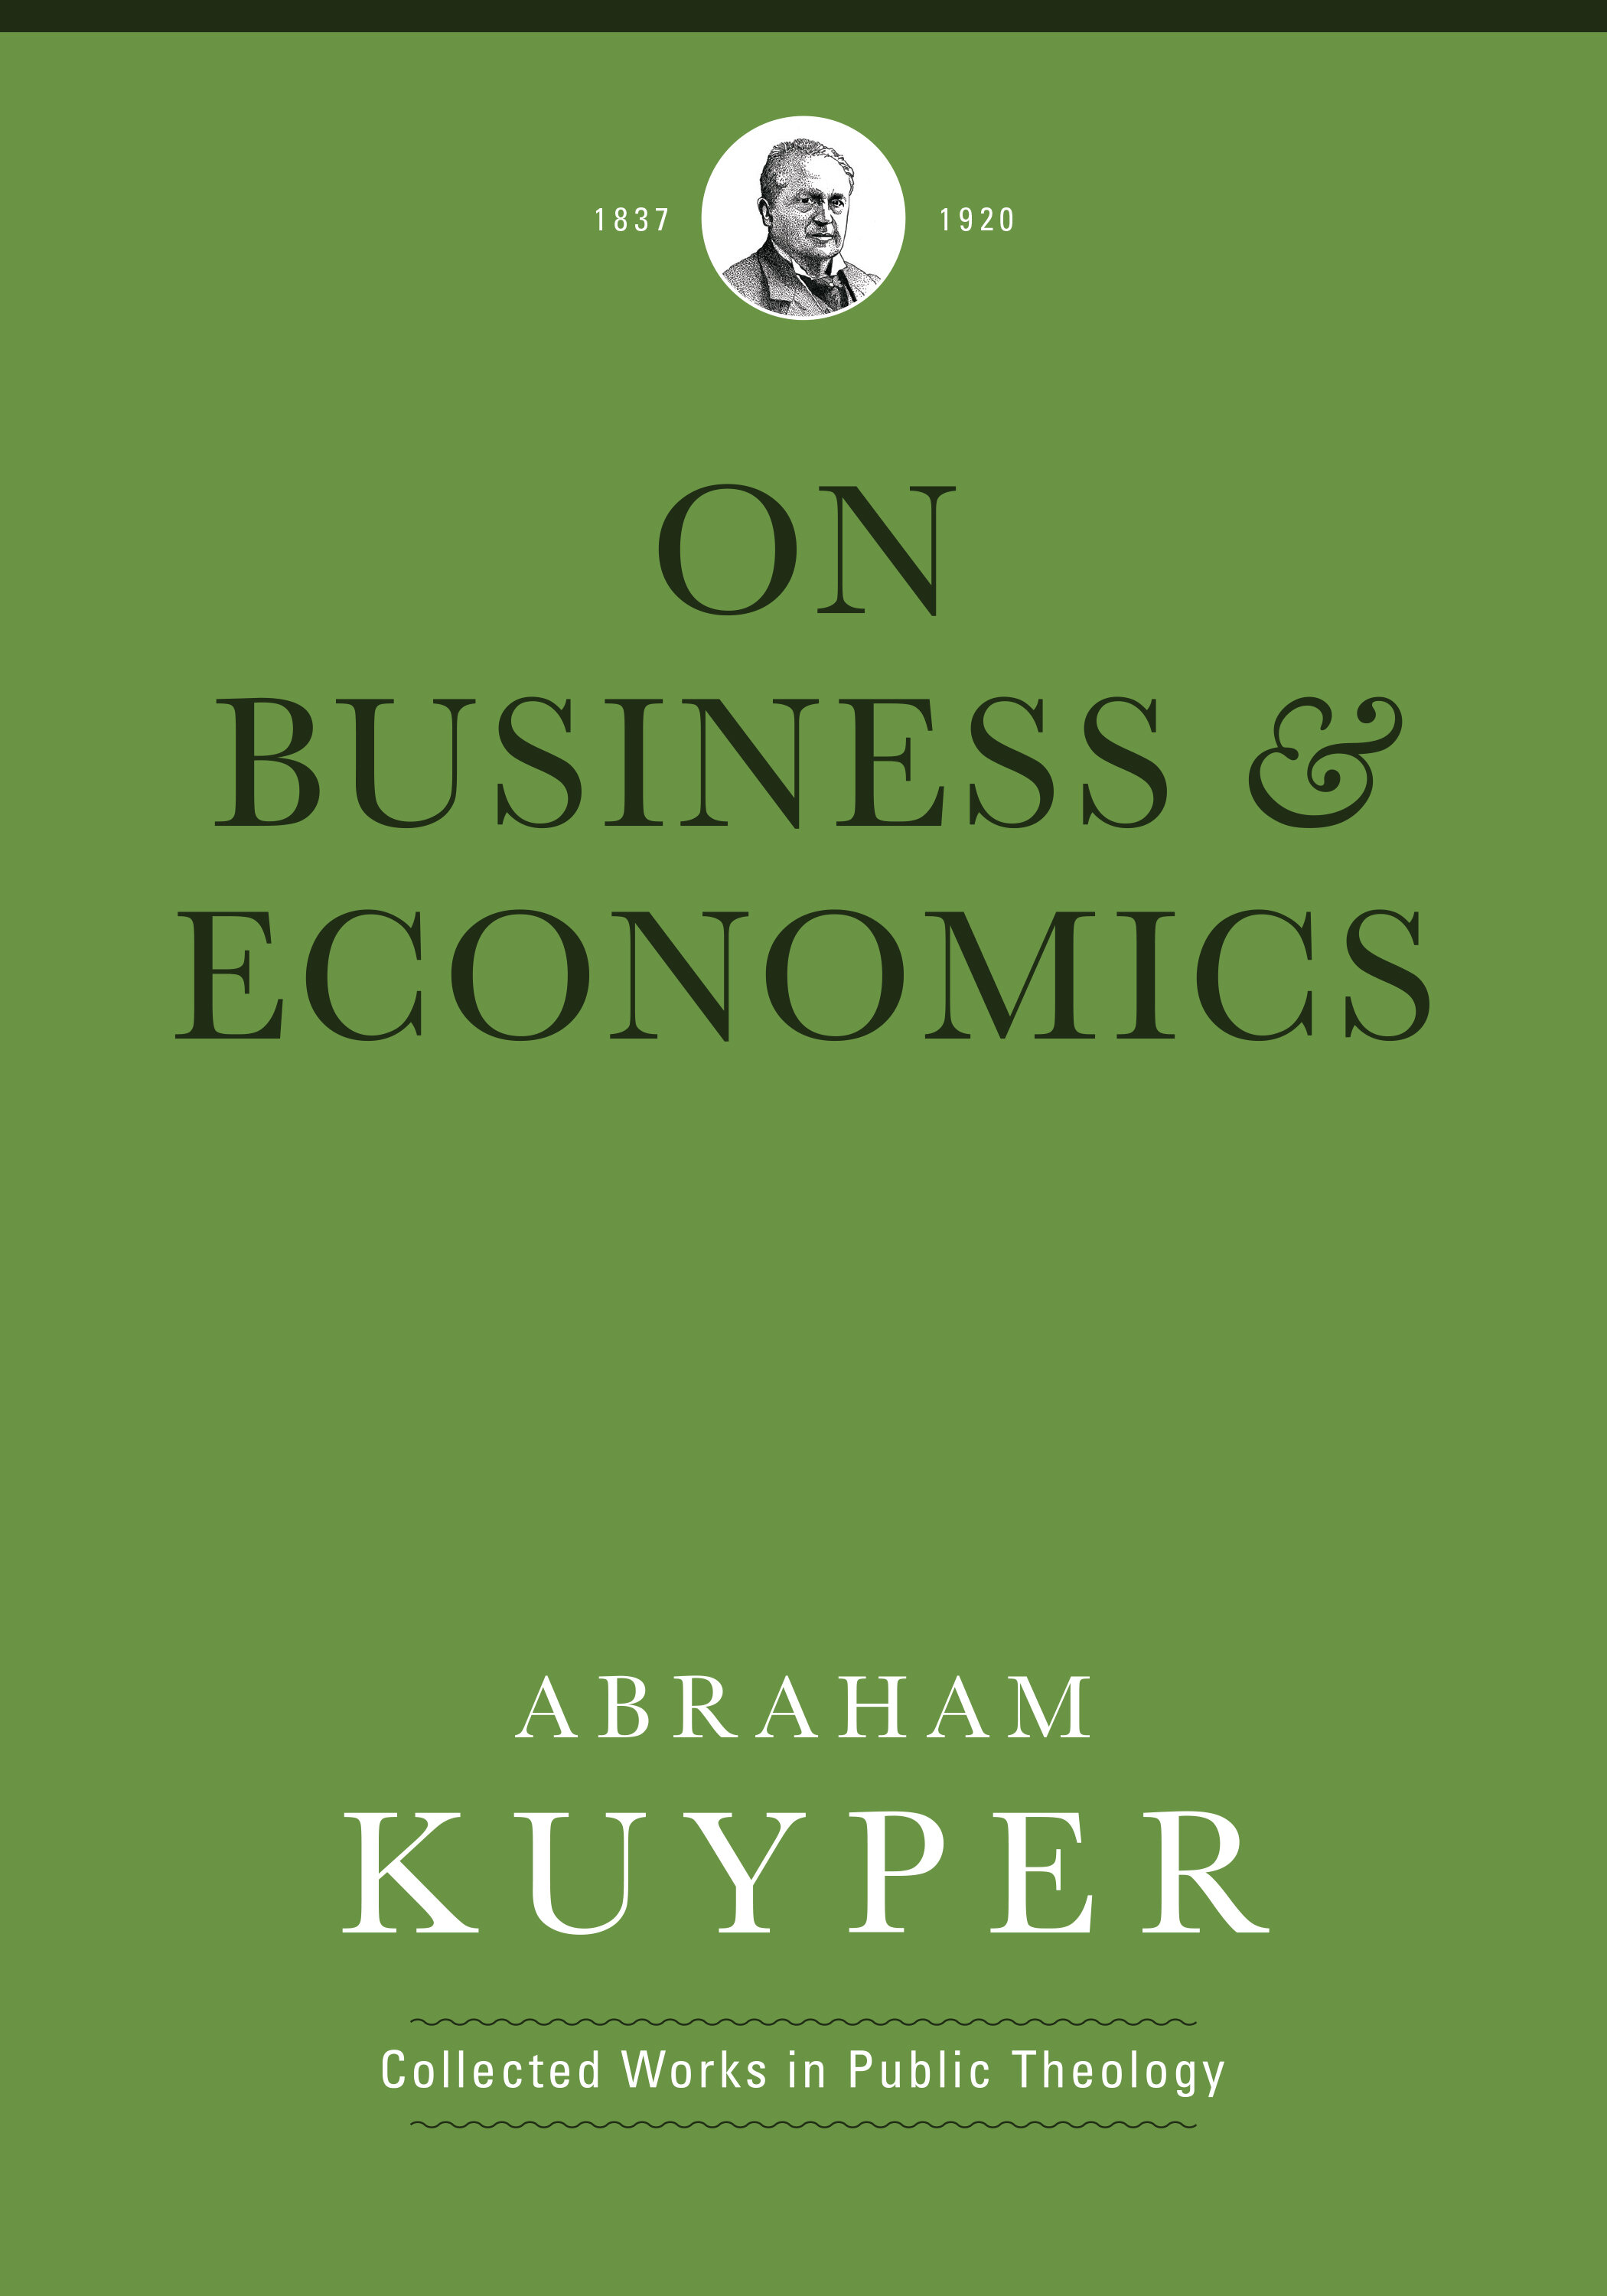 On Business & Economics